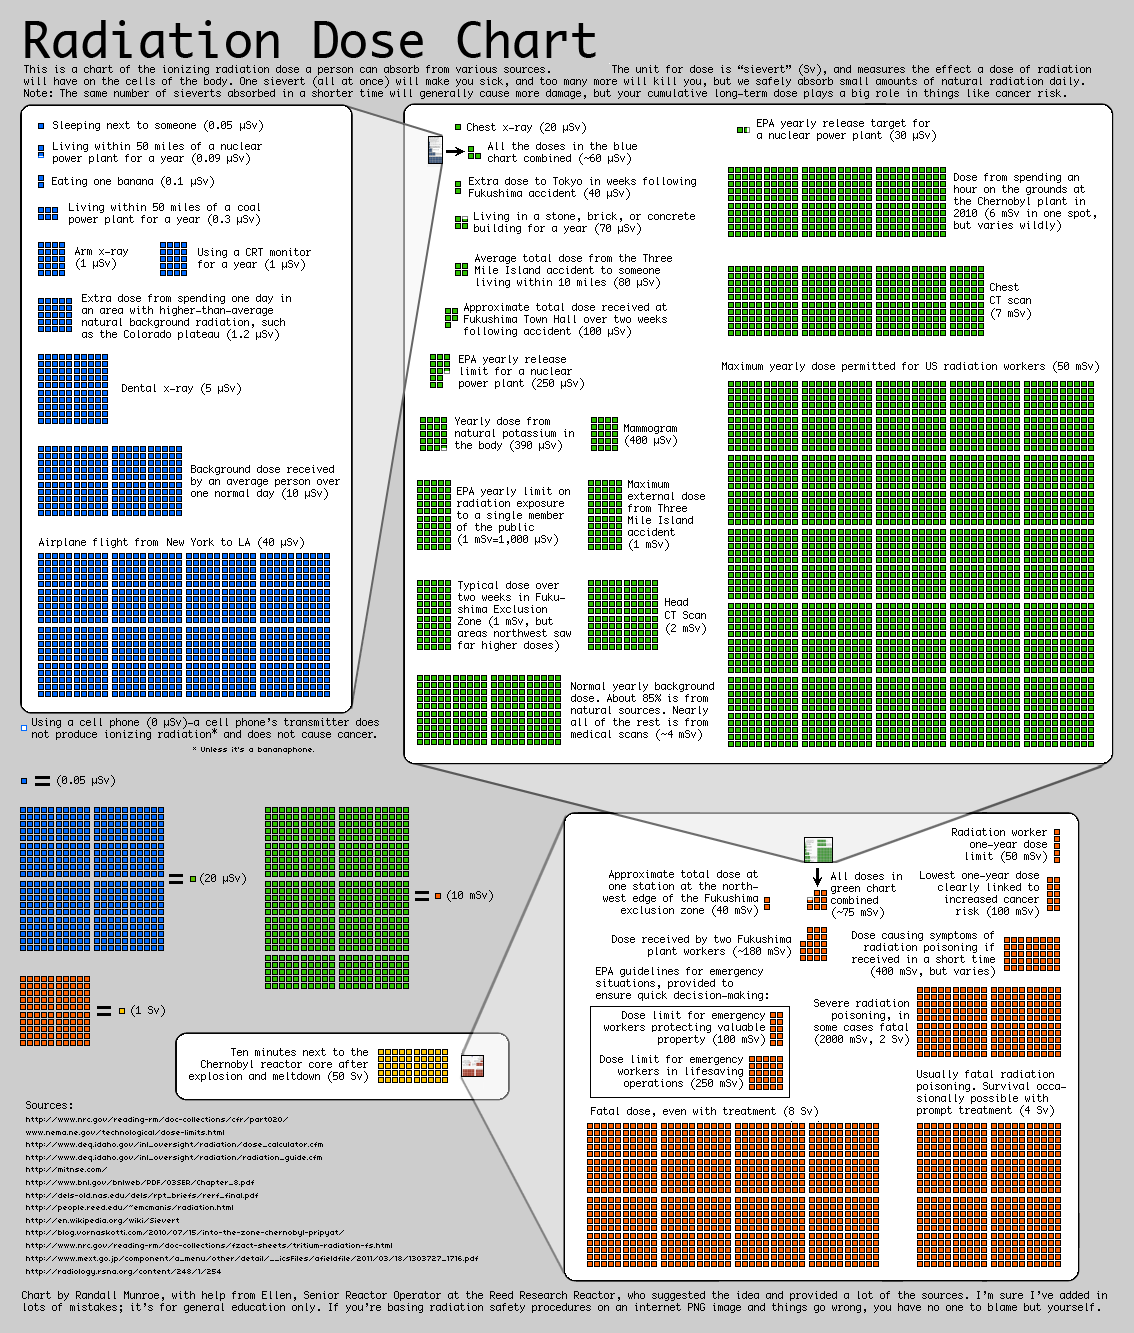 Radiation_Dose_Chart_by_Xkcd.png